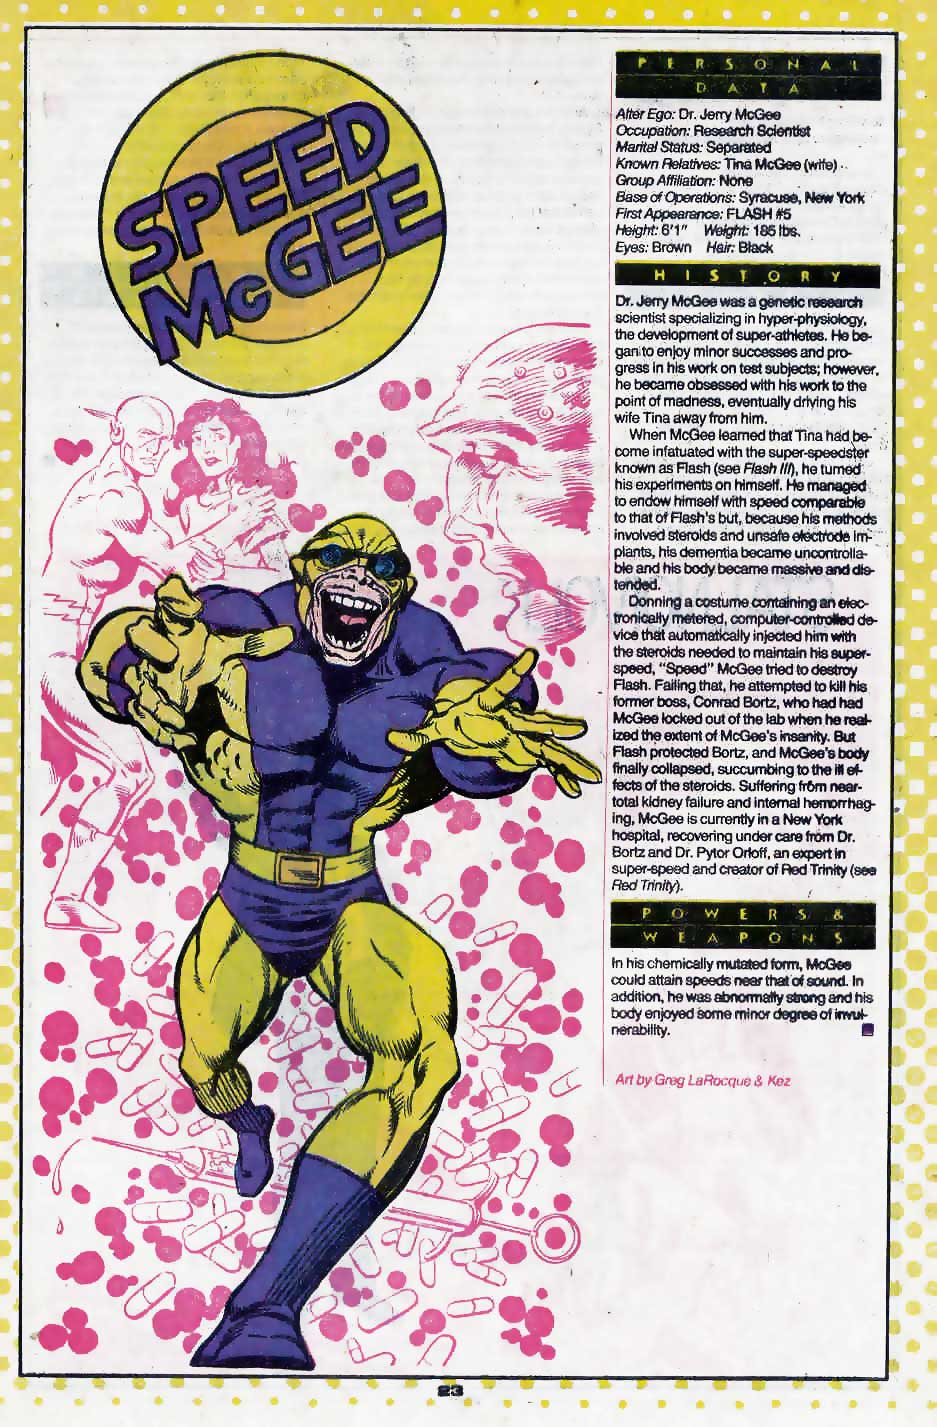 Who's Who Update 88 #3 Speed McGee by Greg LaRocque and Kez